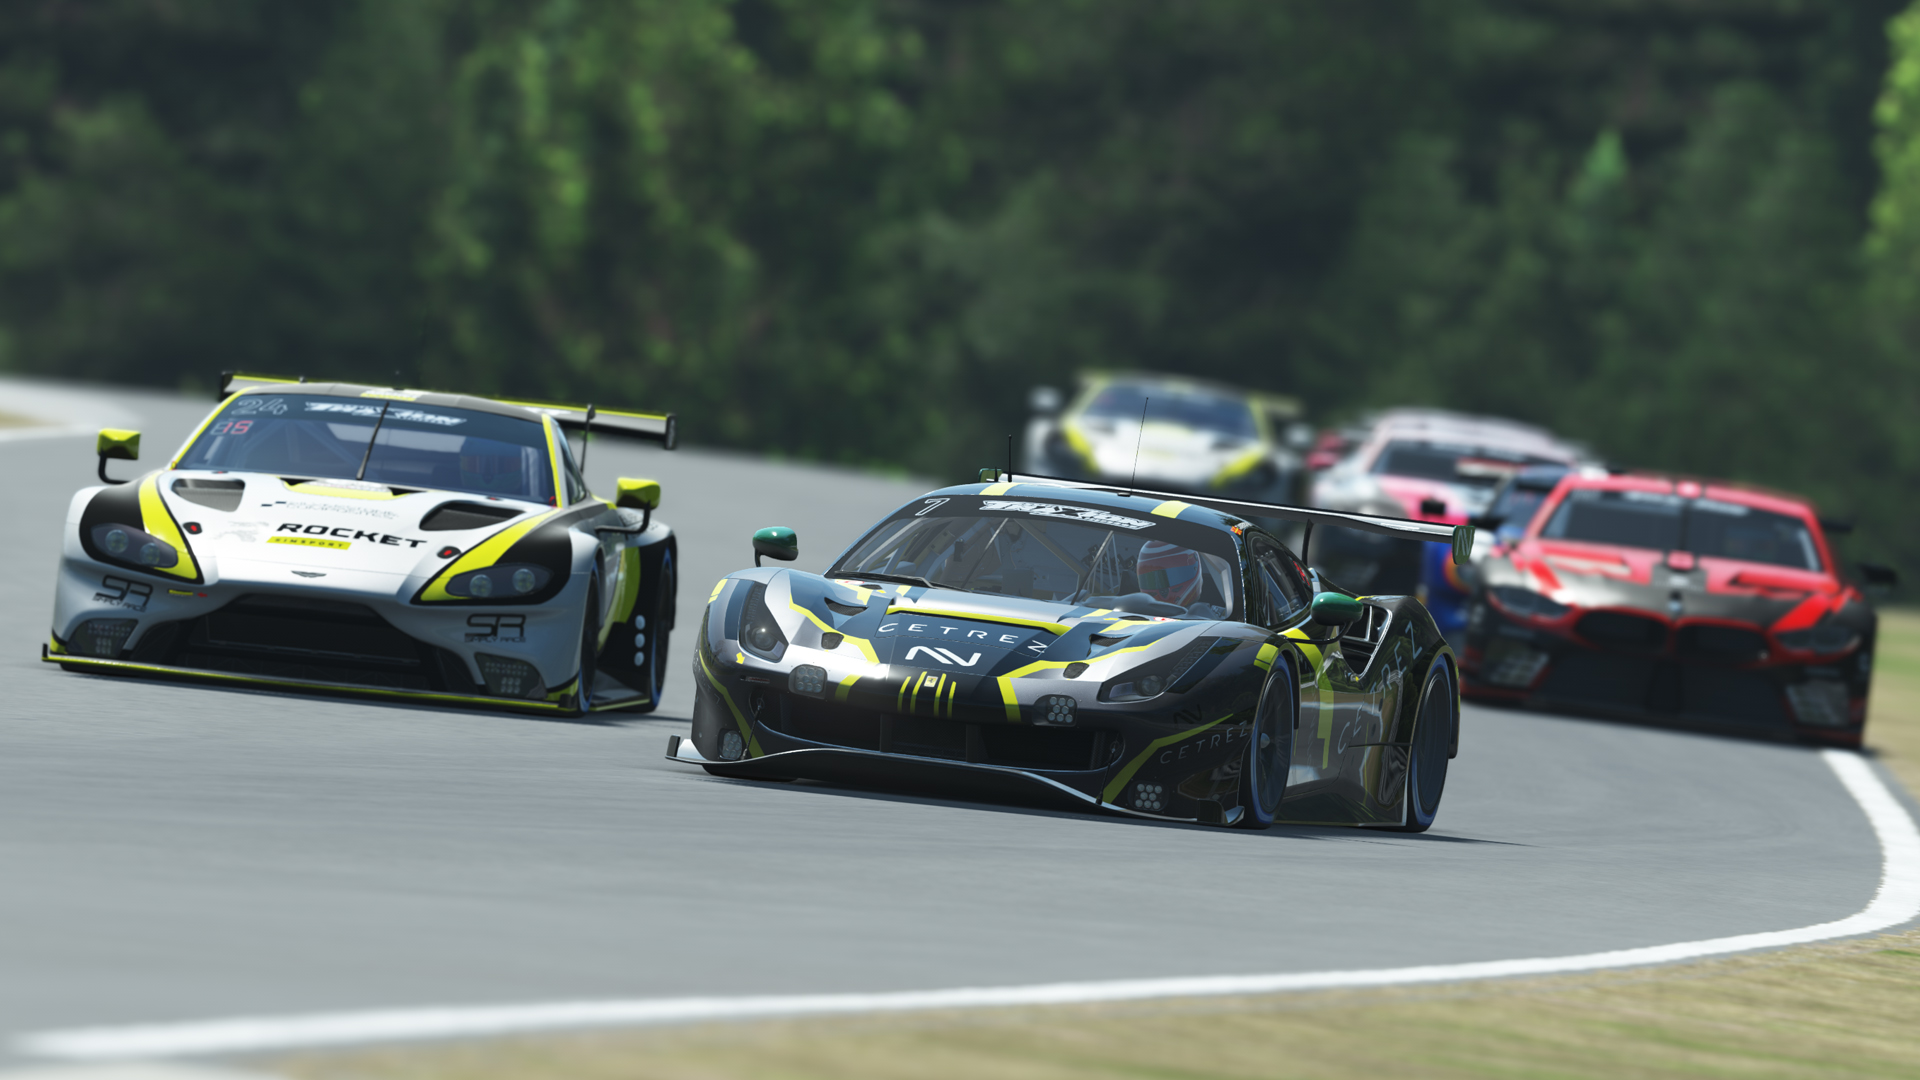 Toman and Andonovski find success at Lime Rock Park GT Pro Series round